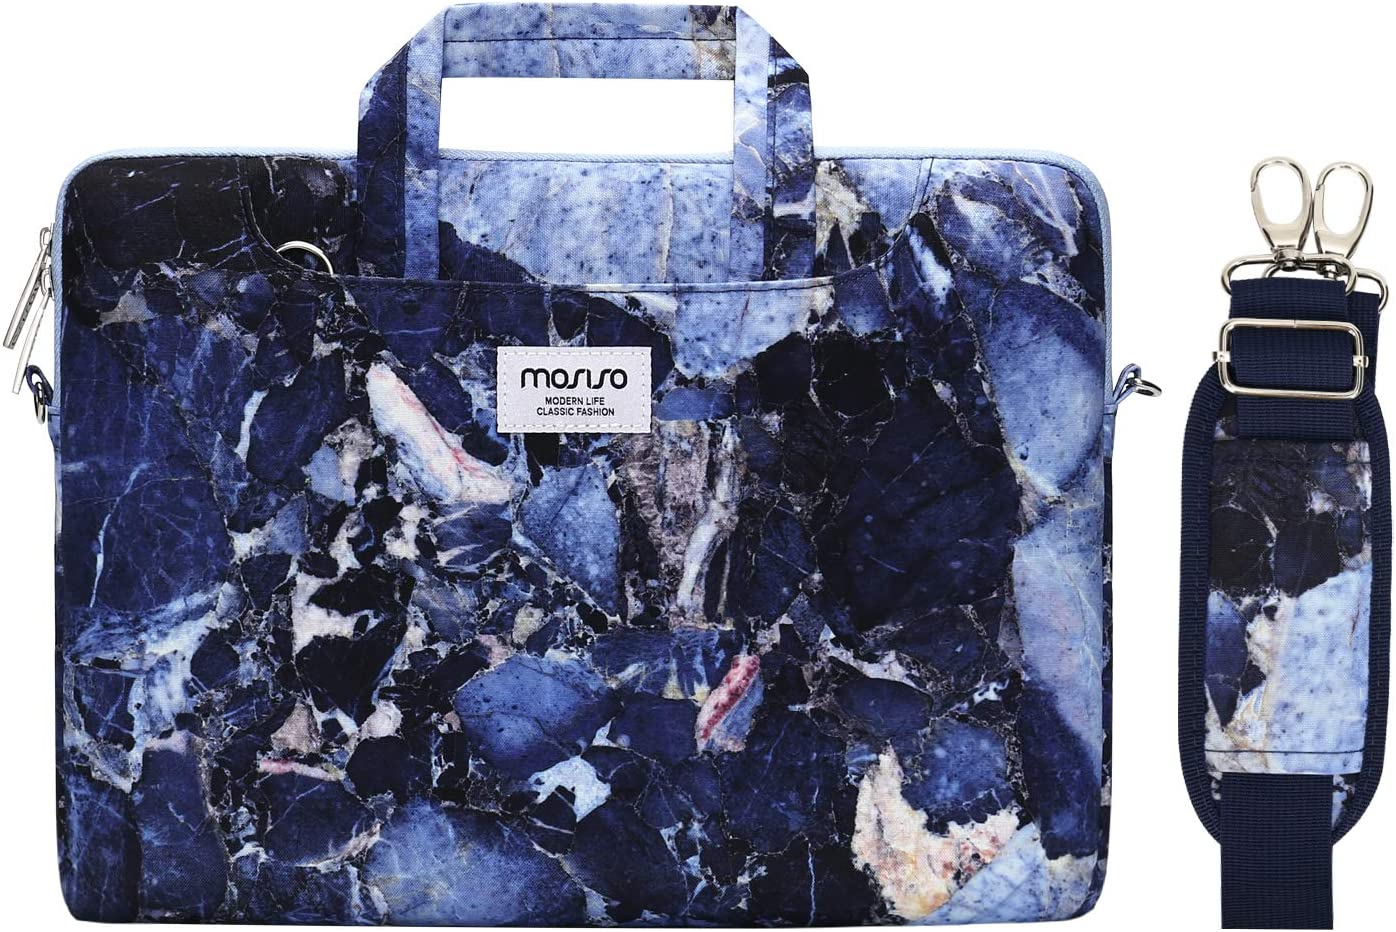 MOSISO Laptop Shoulder Bag Compatible with MacBook Pro 16 inch A2141 2020 2019, 15 15.4 15.6 inch Dell HP Acer Sony Chromebook, Polyester Rock Marble Briefcase Sleeve Case with Trolley Belt